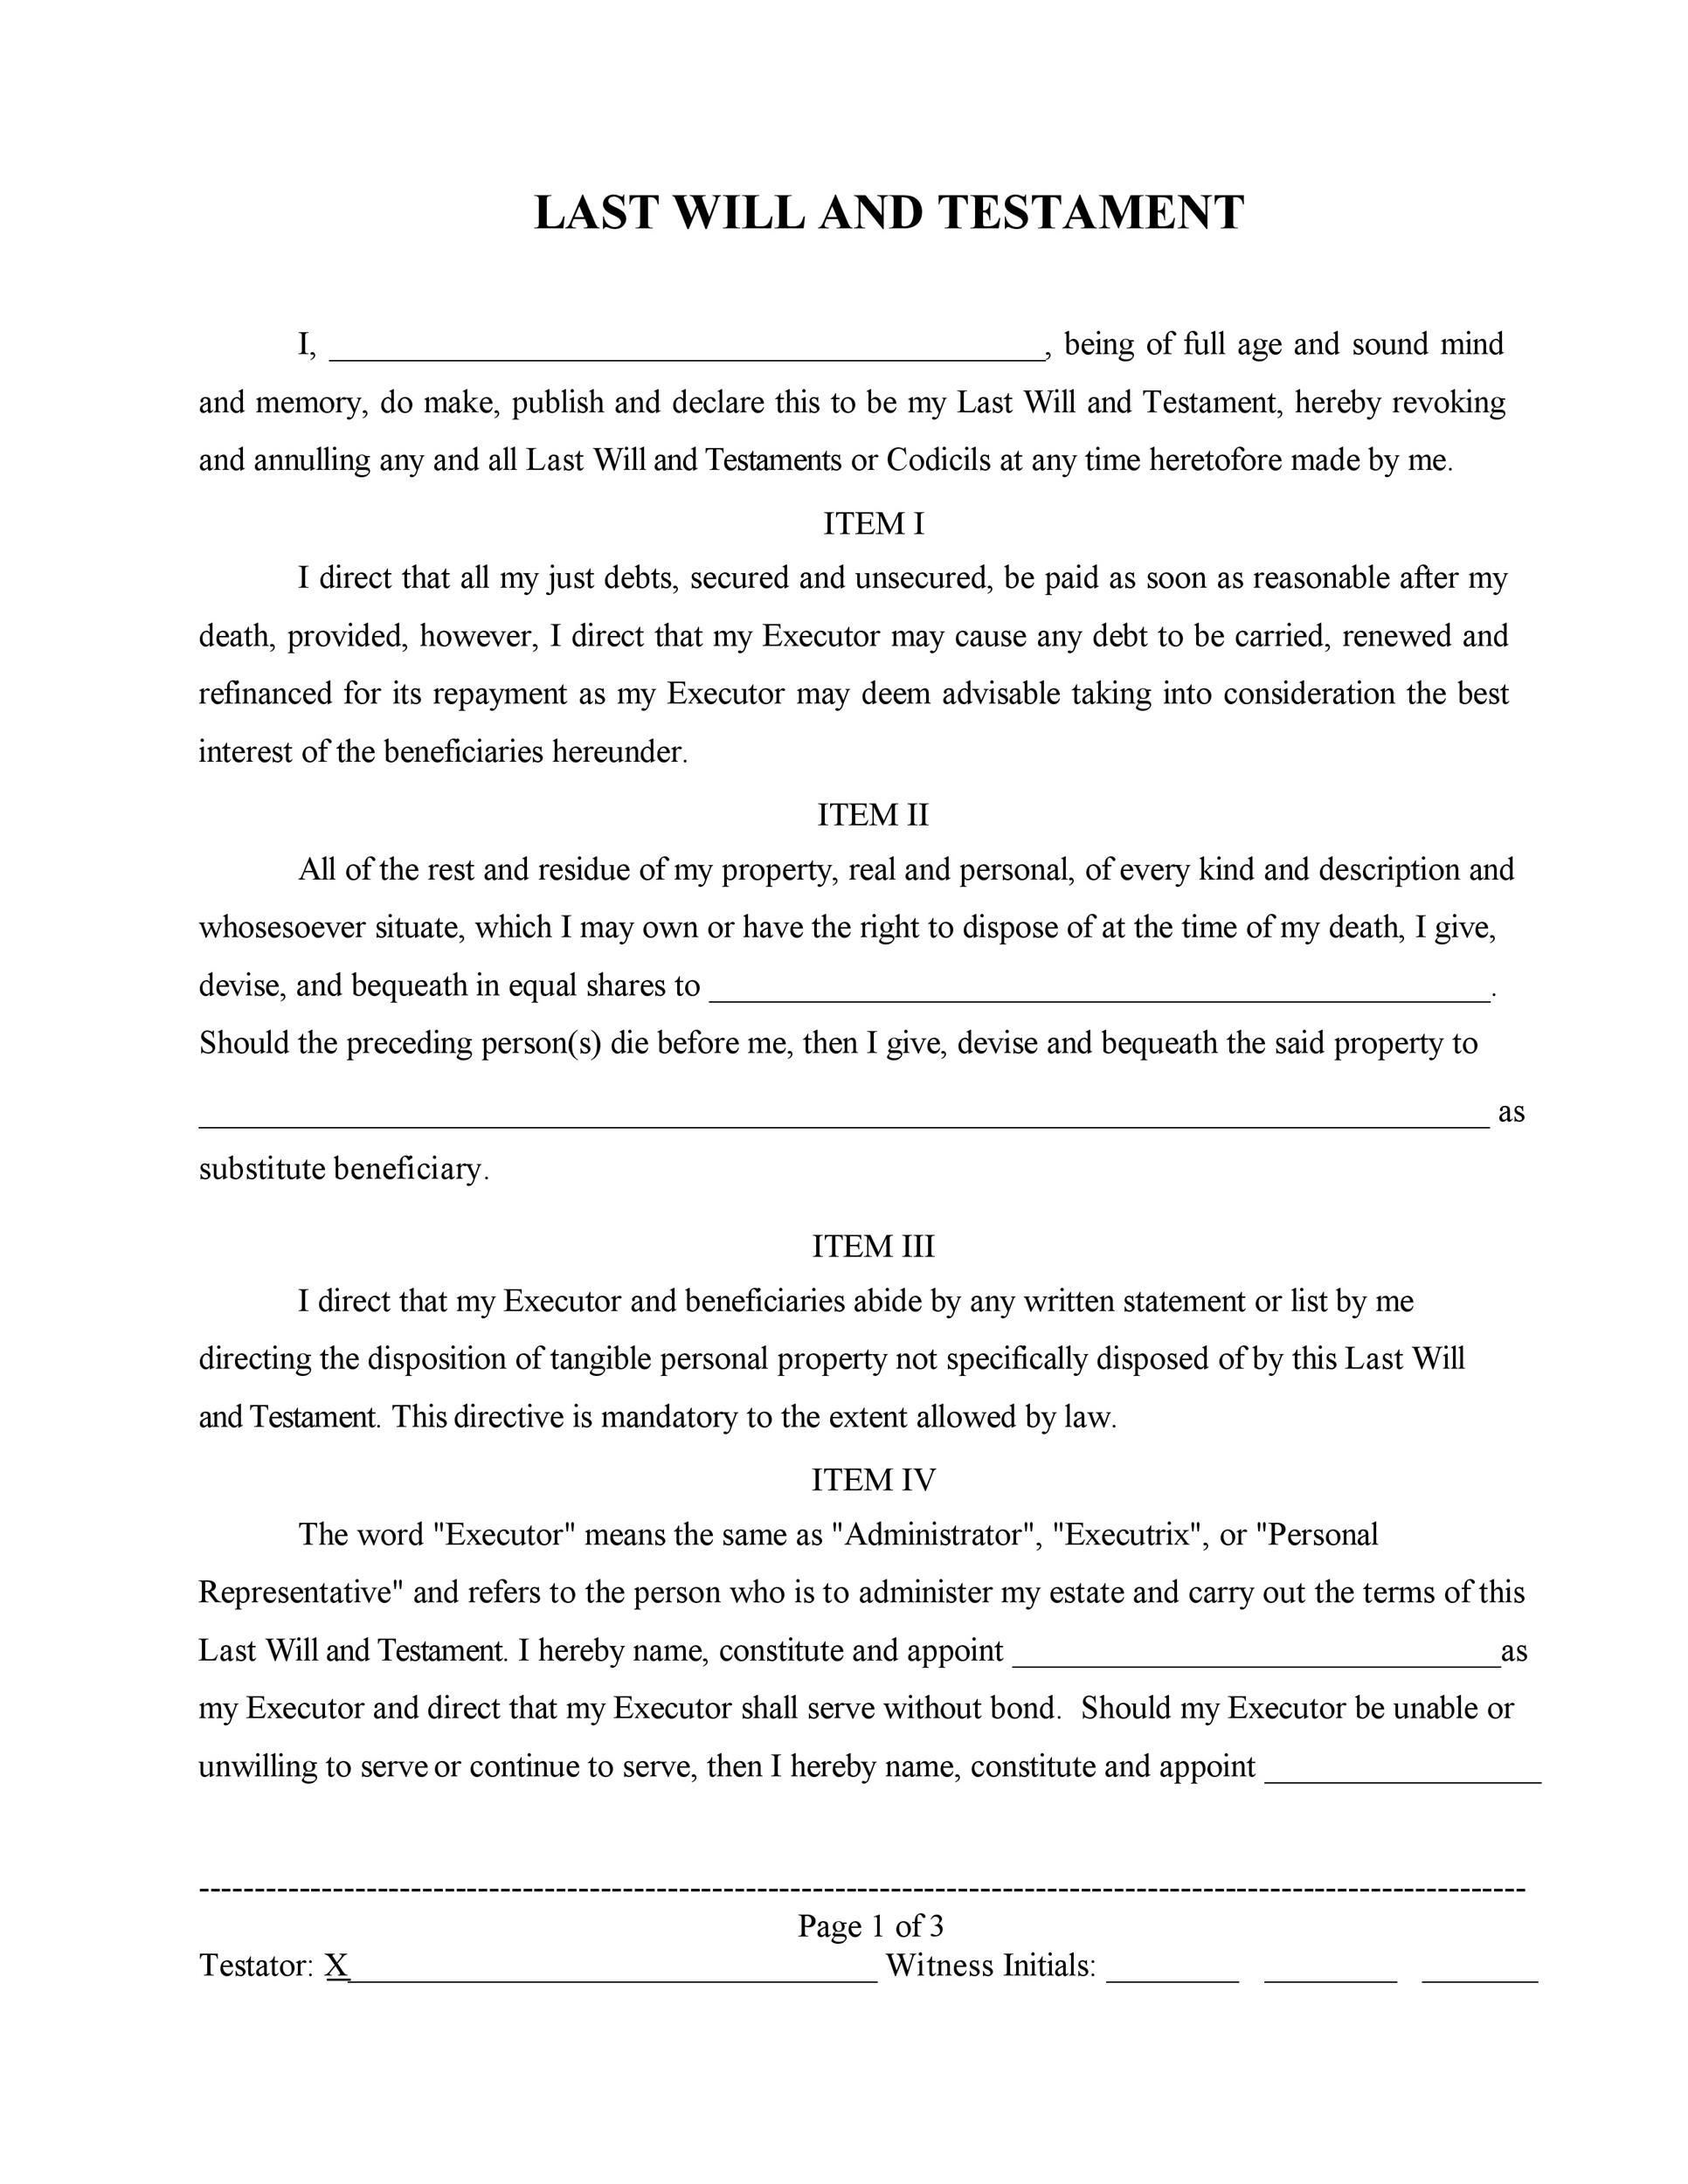 Last Will and Testament Form - Free Online Will Template